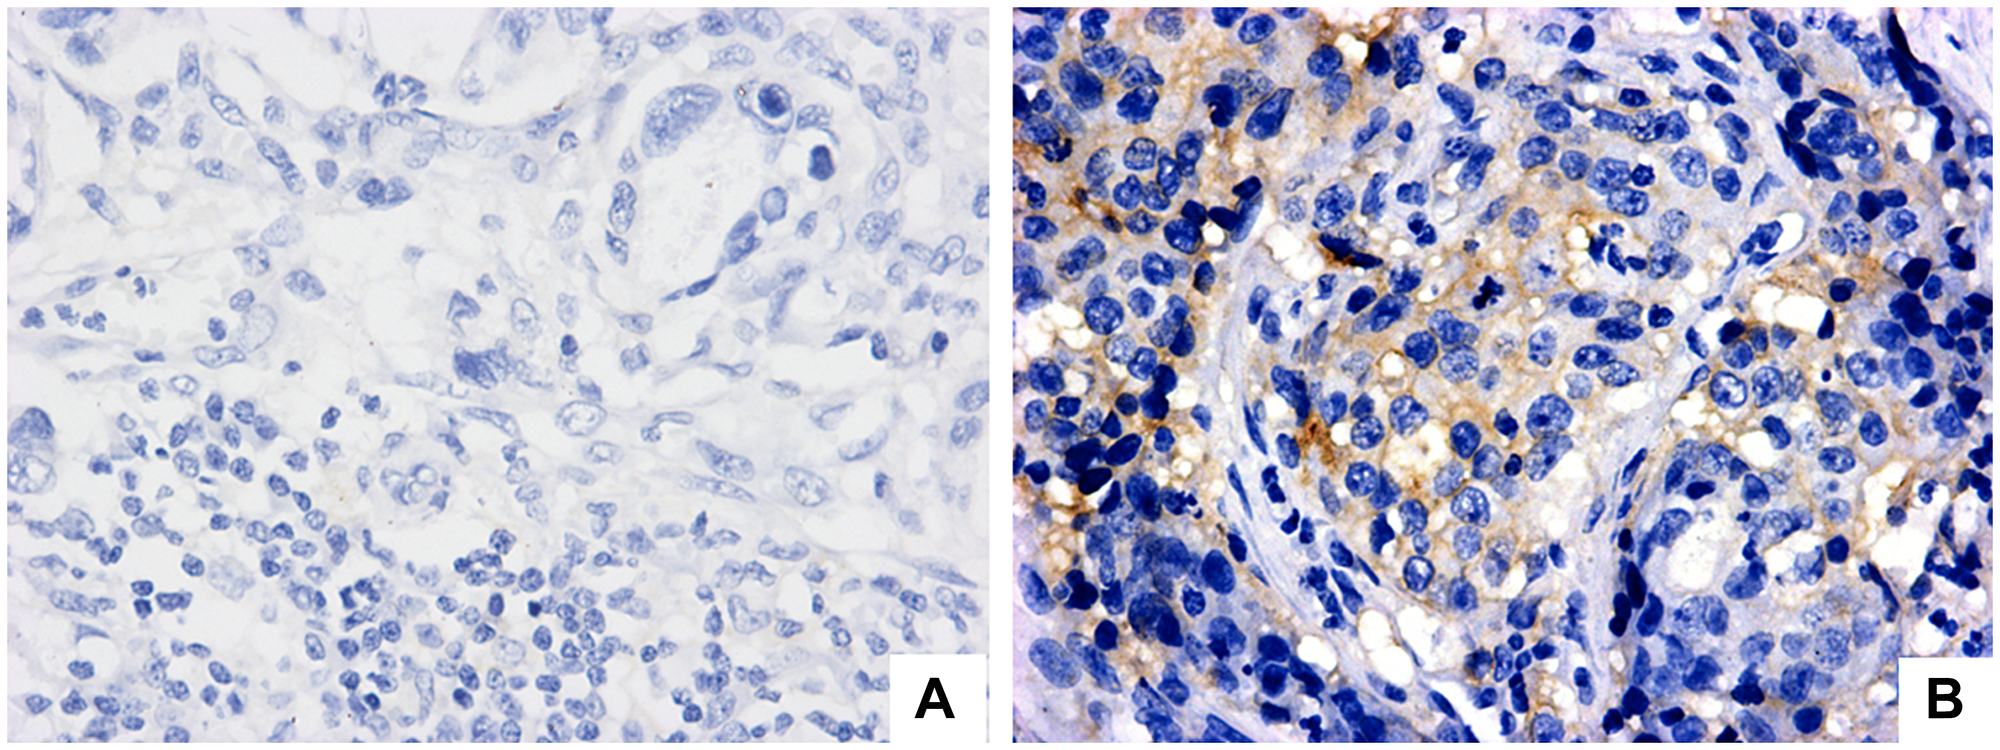 PD-L1 expression evaluation in regional lymph node with metastatic gastric adenocarcinoma (positive lymph node).